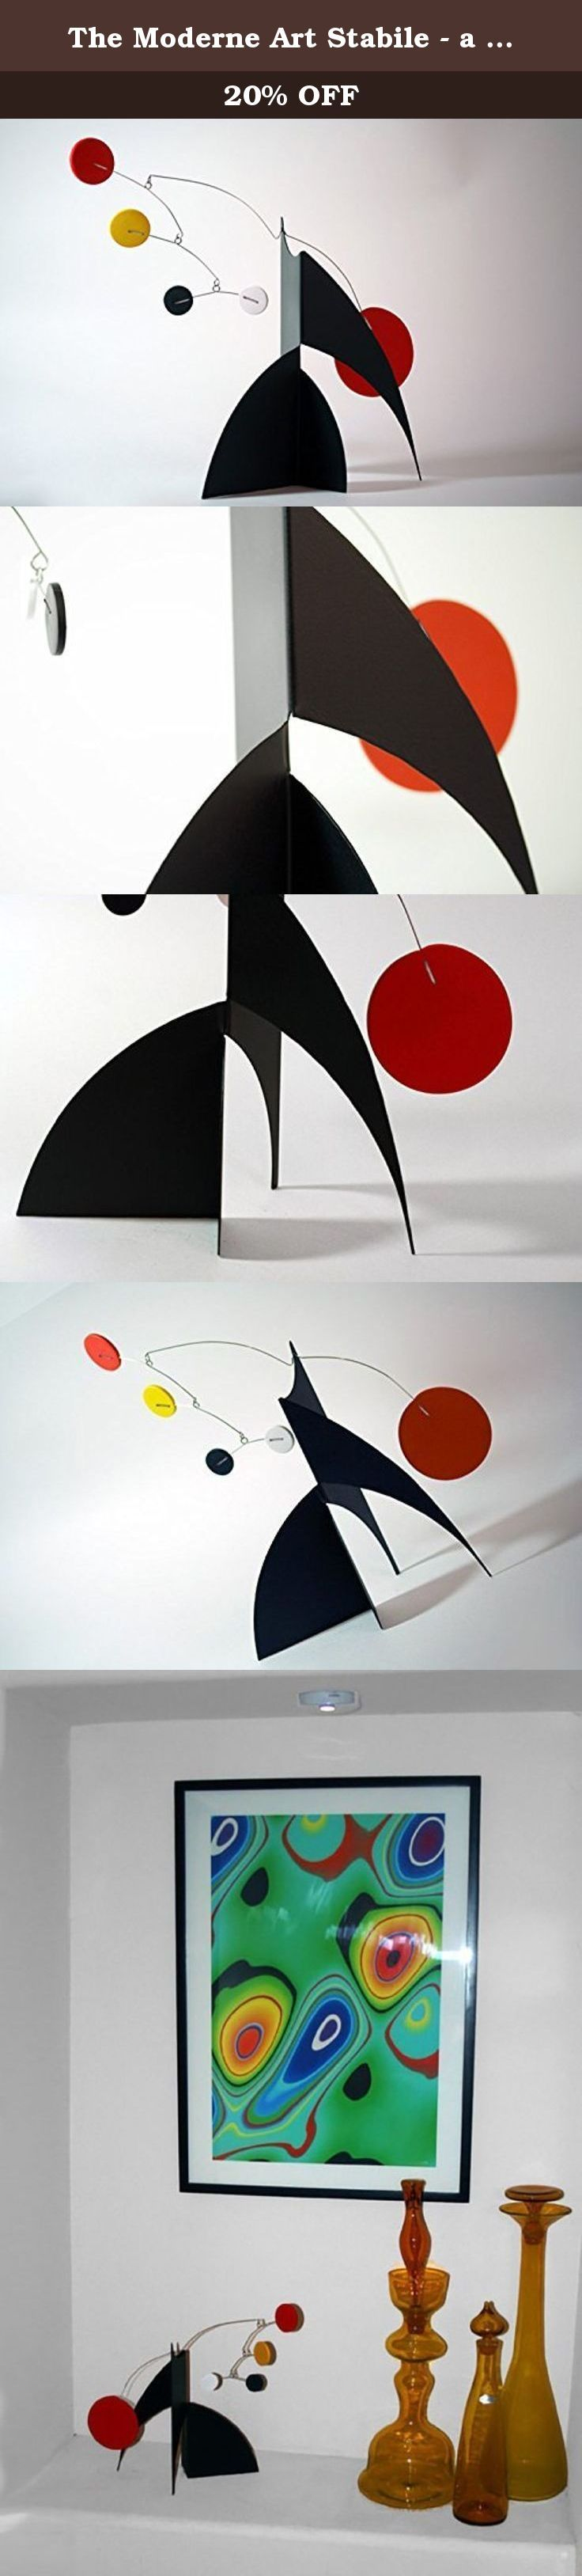 "The Moderne Art Stabile - a mobile you display on desktop, coffee table, or shelf - Inspired by Alexander Calder - Eames Midcentury Modern Style. WHAT IS A STABILE? A stabile is a free-standing kinetic art mobile that sits on a flat surface, so you do not need to hang it, you simply set it and enjoy. The word ""stabile"" was coined by the Dadaist Jean (Hans) Arp in 1931 for Alexander Calder, the founder of art mobiles and stabiles. You can place it on any desktop, tabletop, counter, or…"